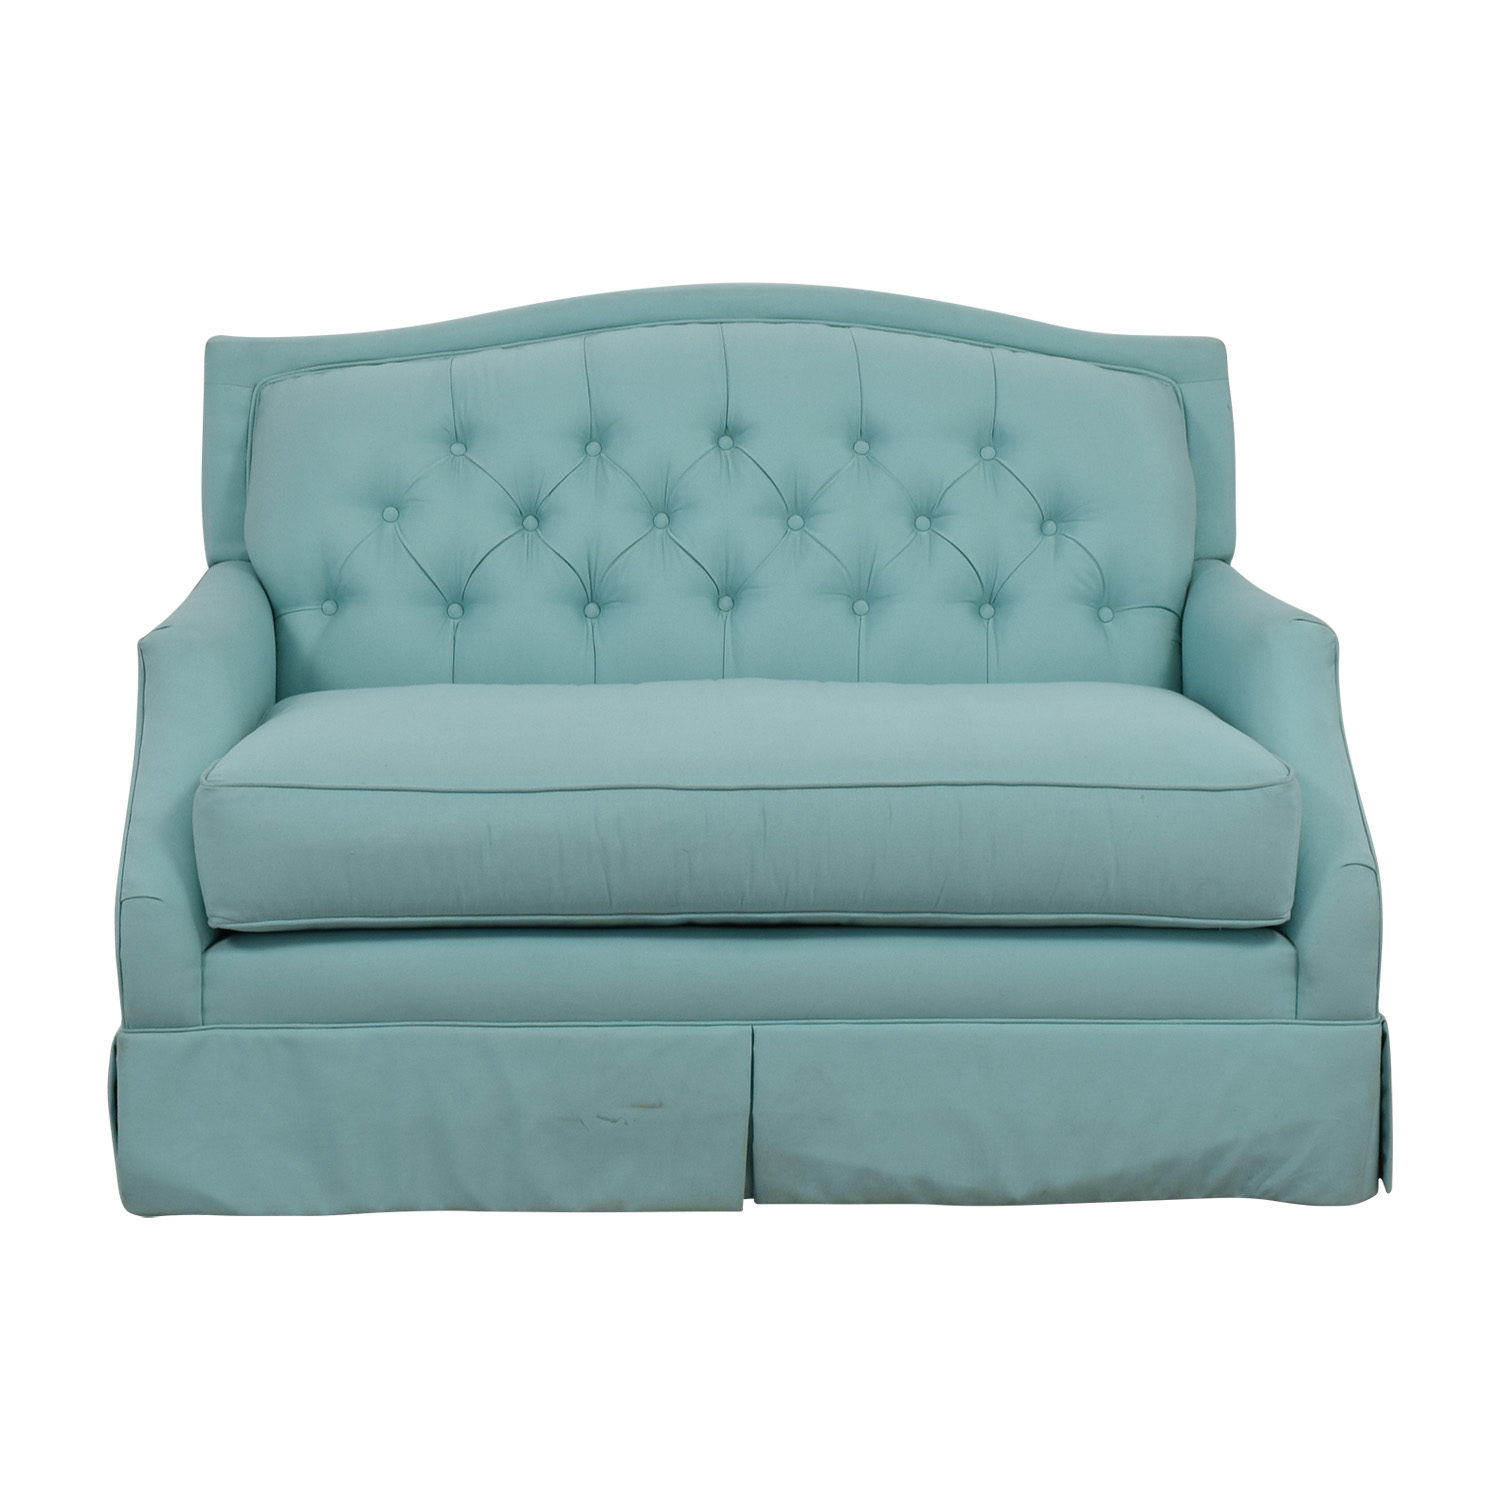 Society Social Society Social Turquoise Ava Loveseat for sale